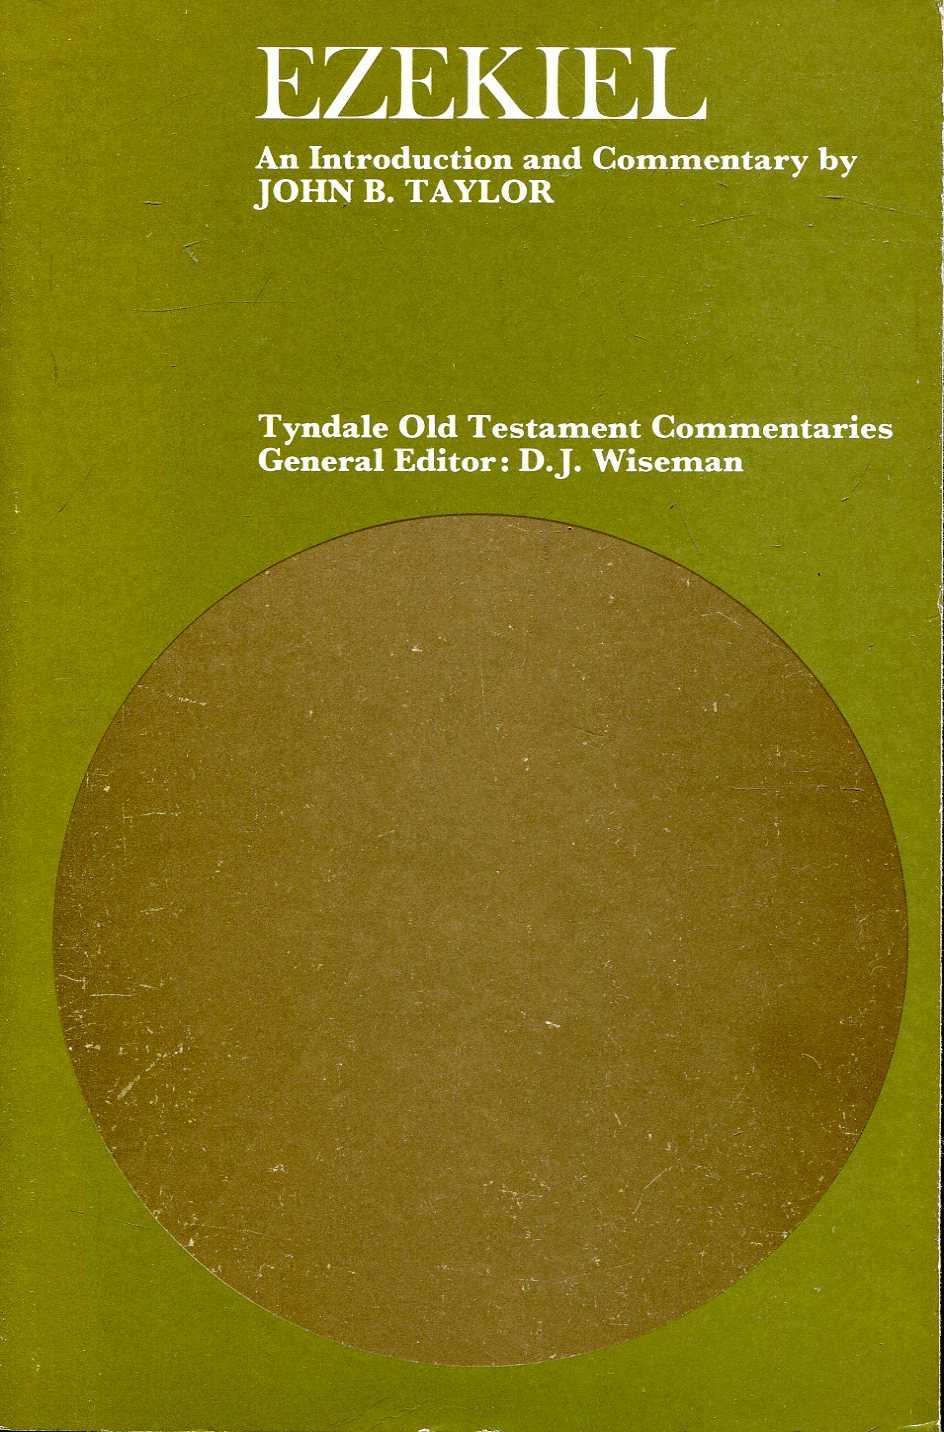 Image for Ezekiel : An Introduction and Commentary (Tyndale Old Testament Commentary Series)